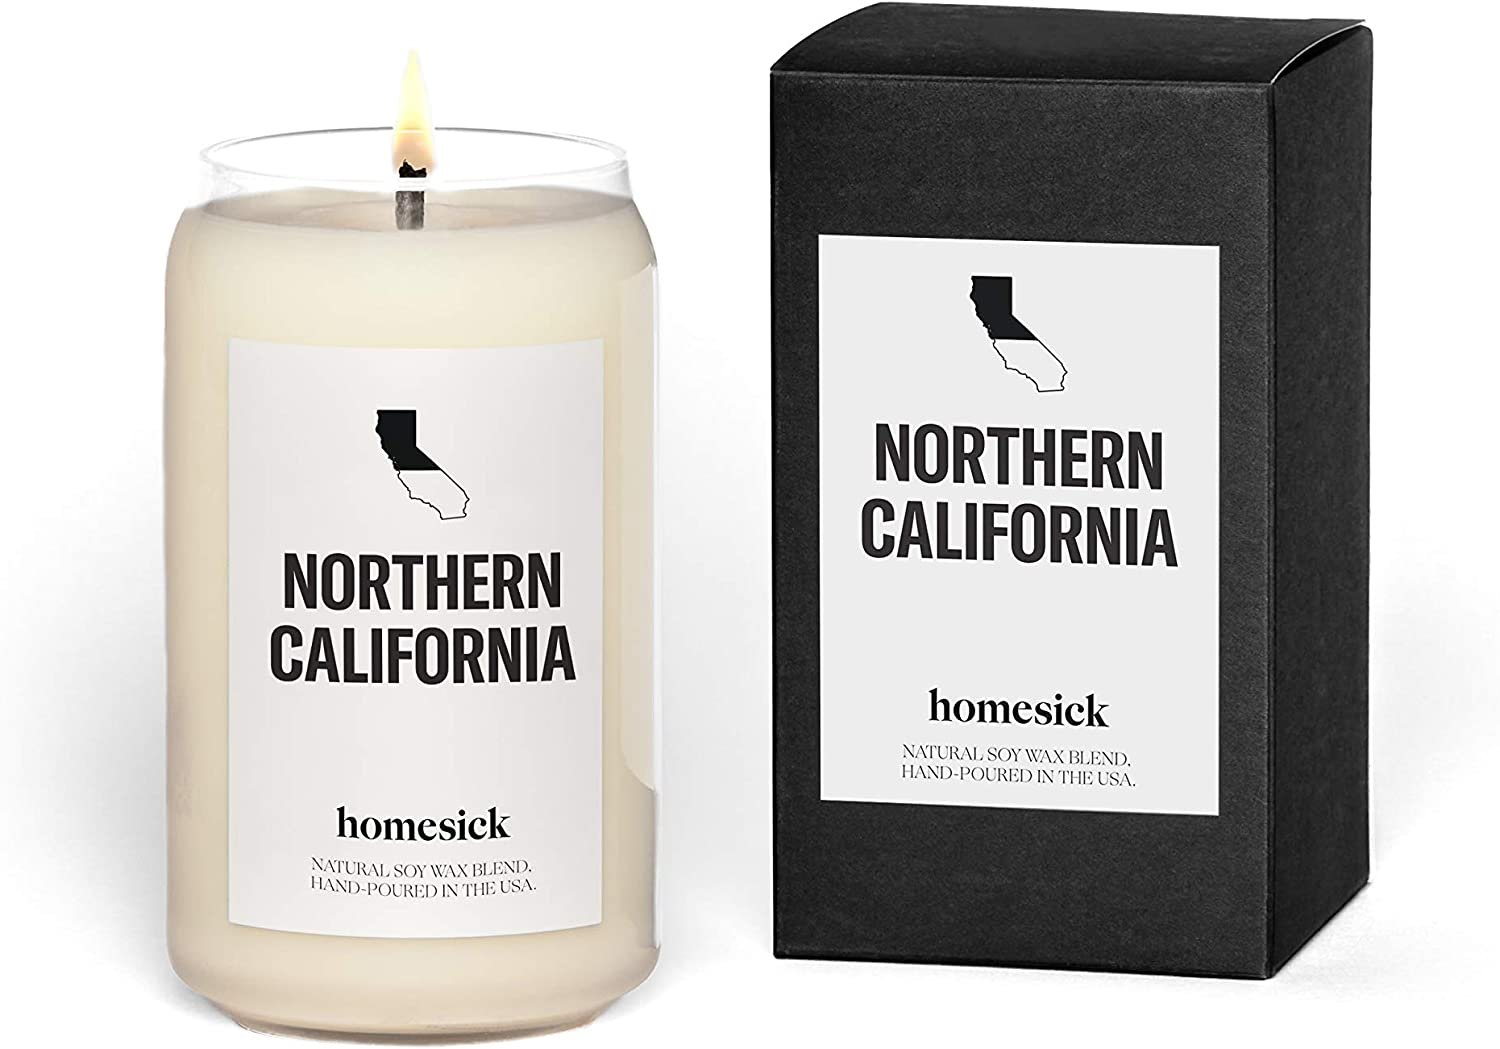 Homesick Scented Candle, Northern California (2020 Version)